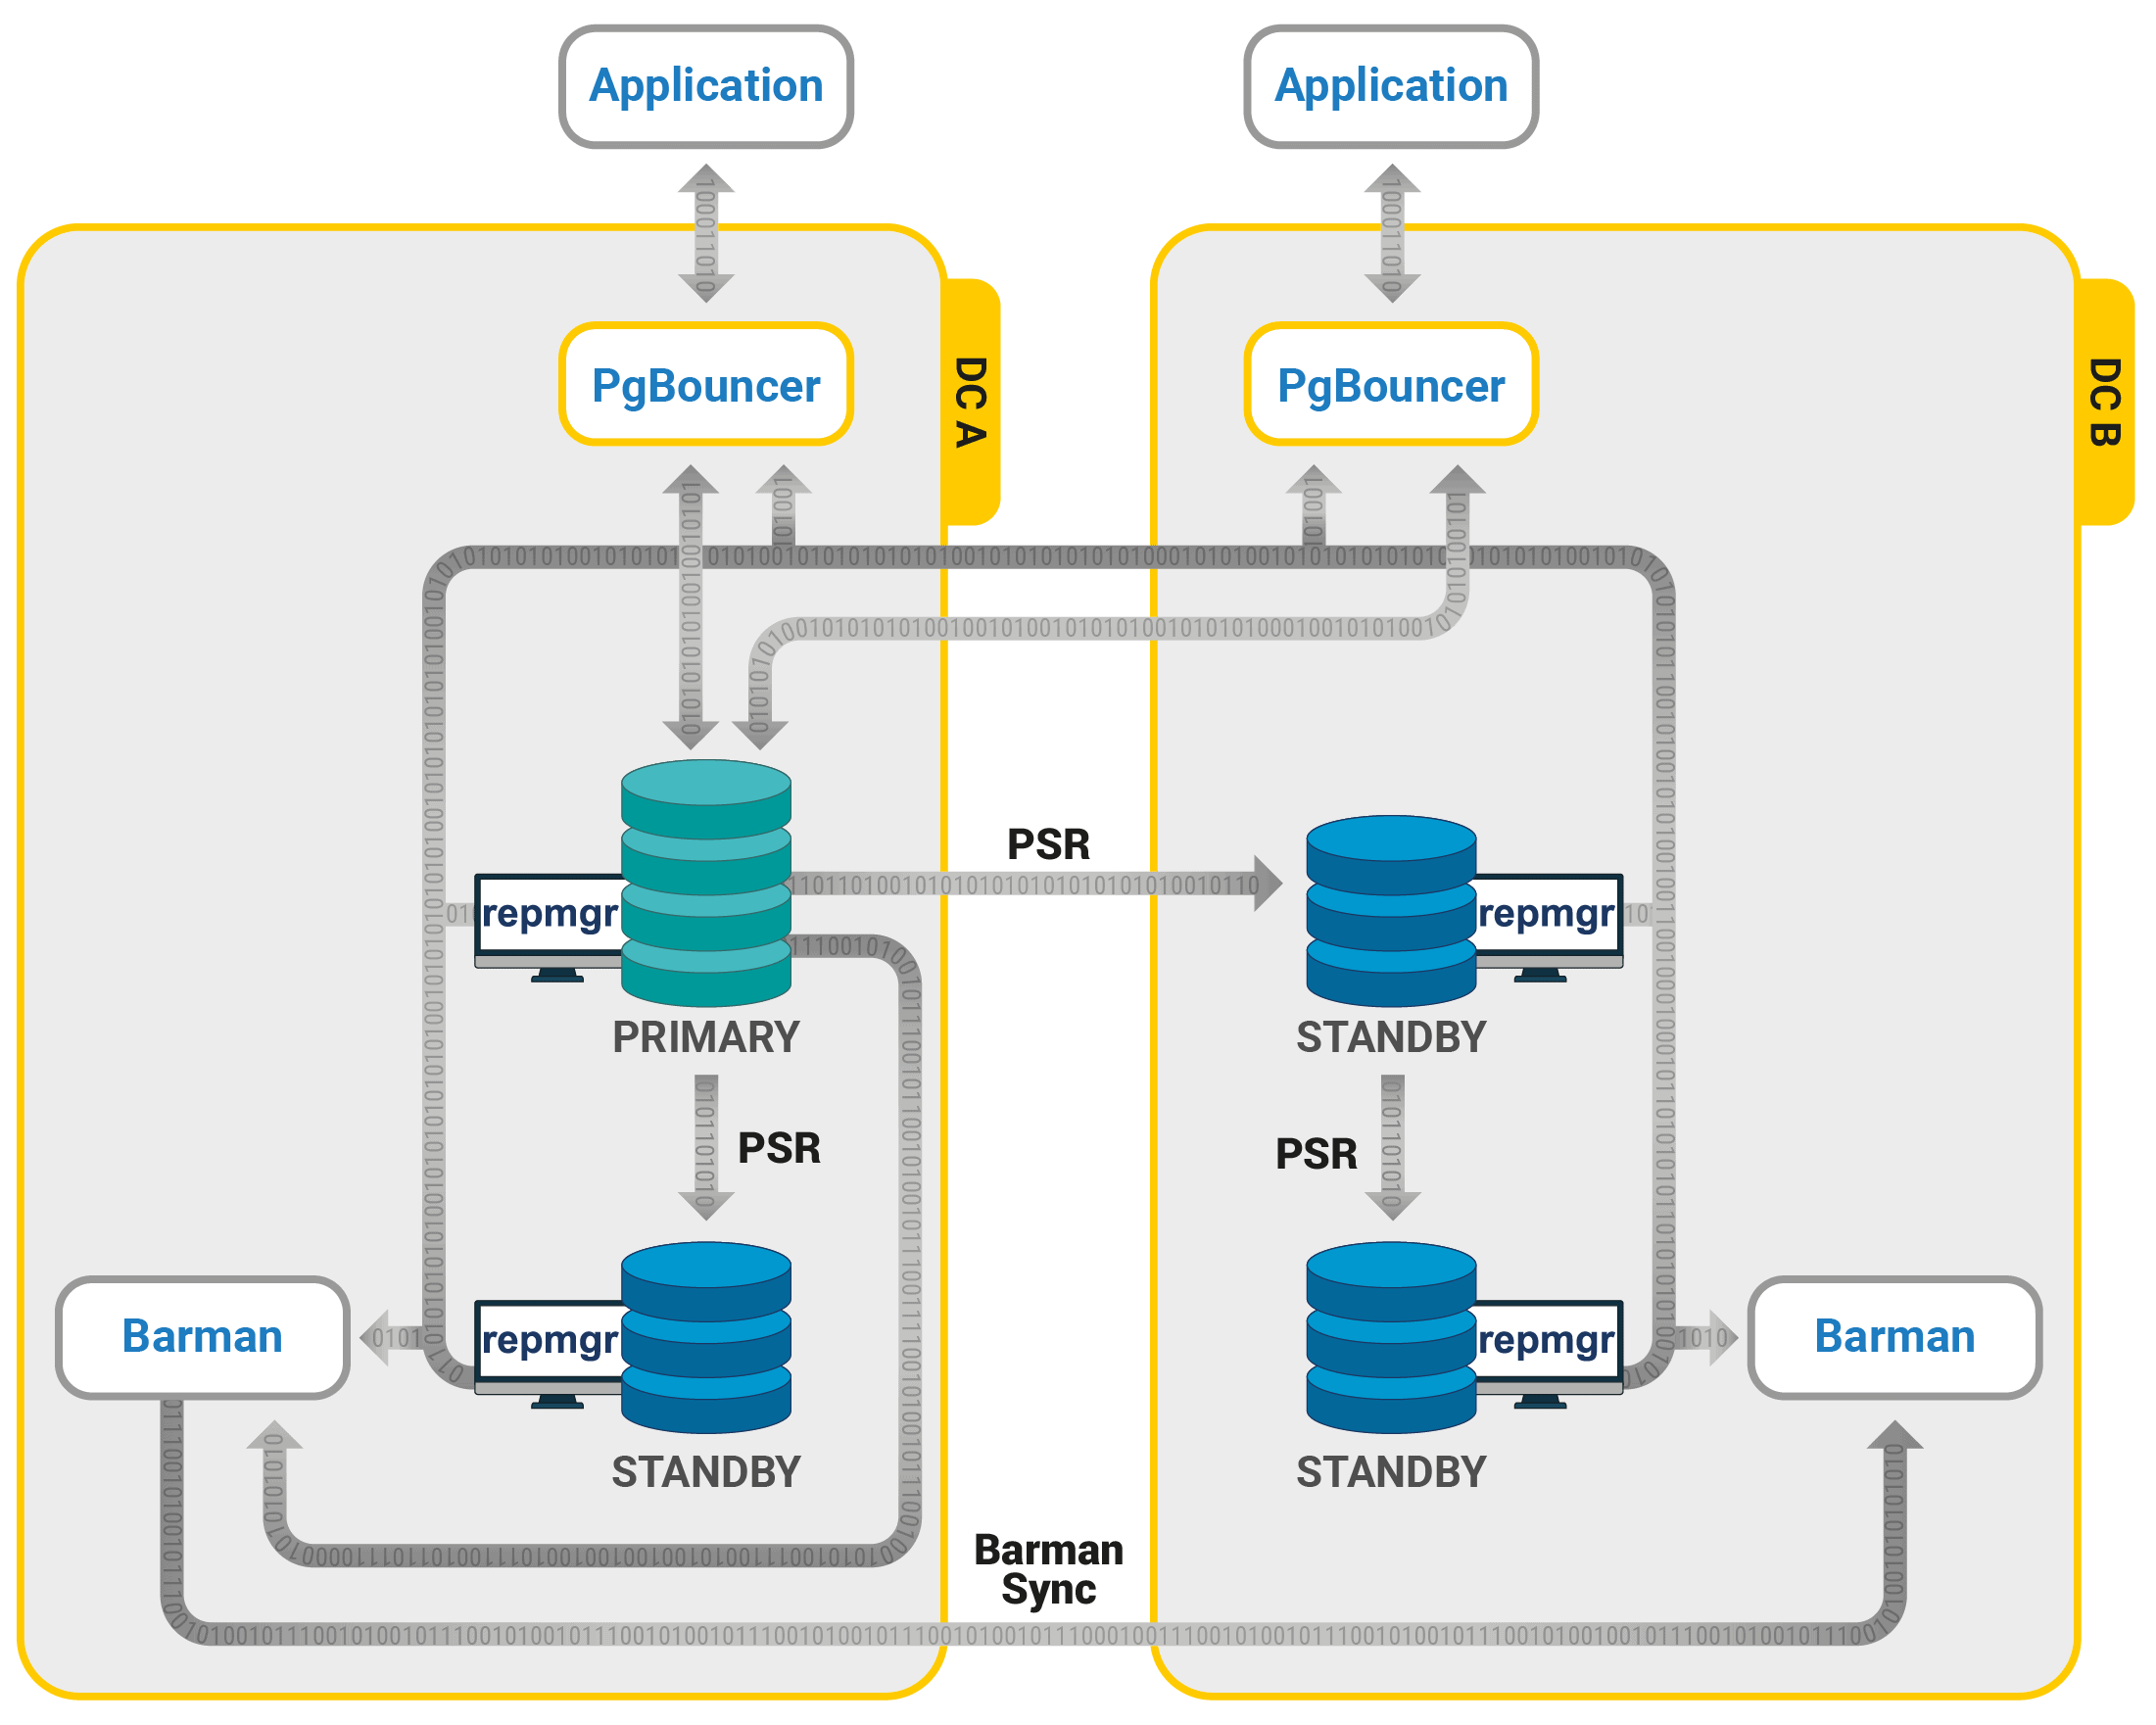 Highly Available PostgreSQL Clusters Diagram - 2ndQuadrant's recommended reference architectures (Trusted PostgreSQL Architectures) for businesses operating a single master with High Availability requirement. This architecture utilizes three open source PostgreSQL extensions: PgBouncer, repmgr, and Barman.